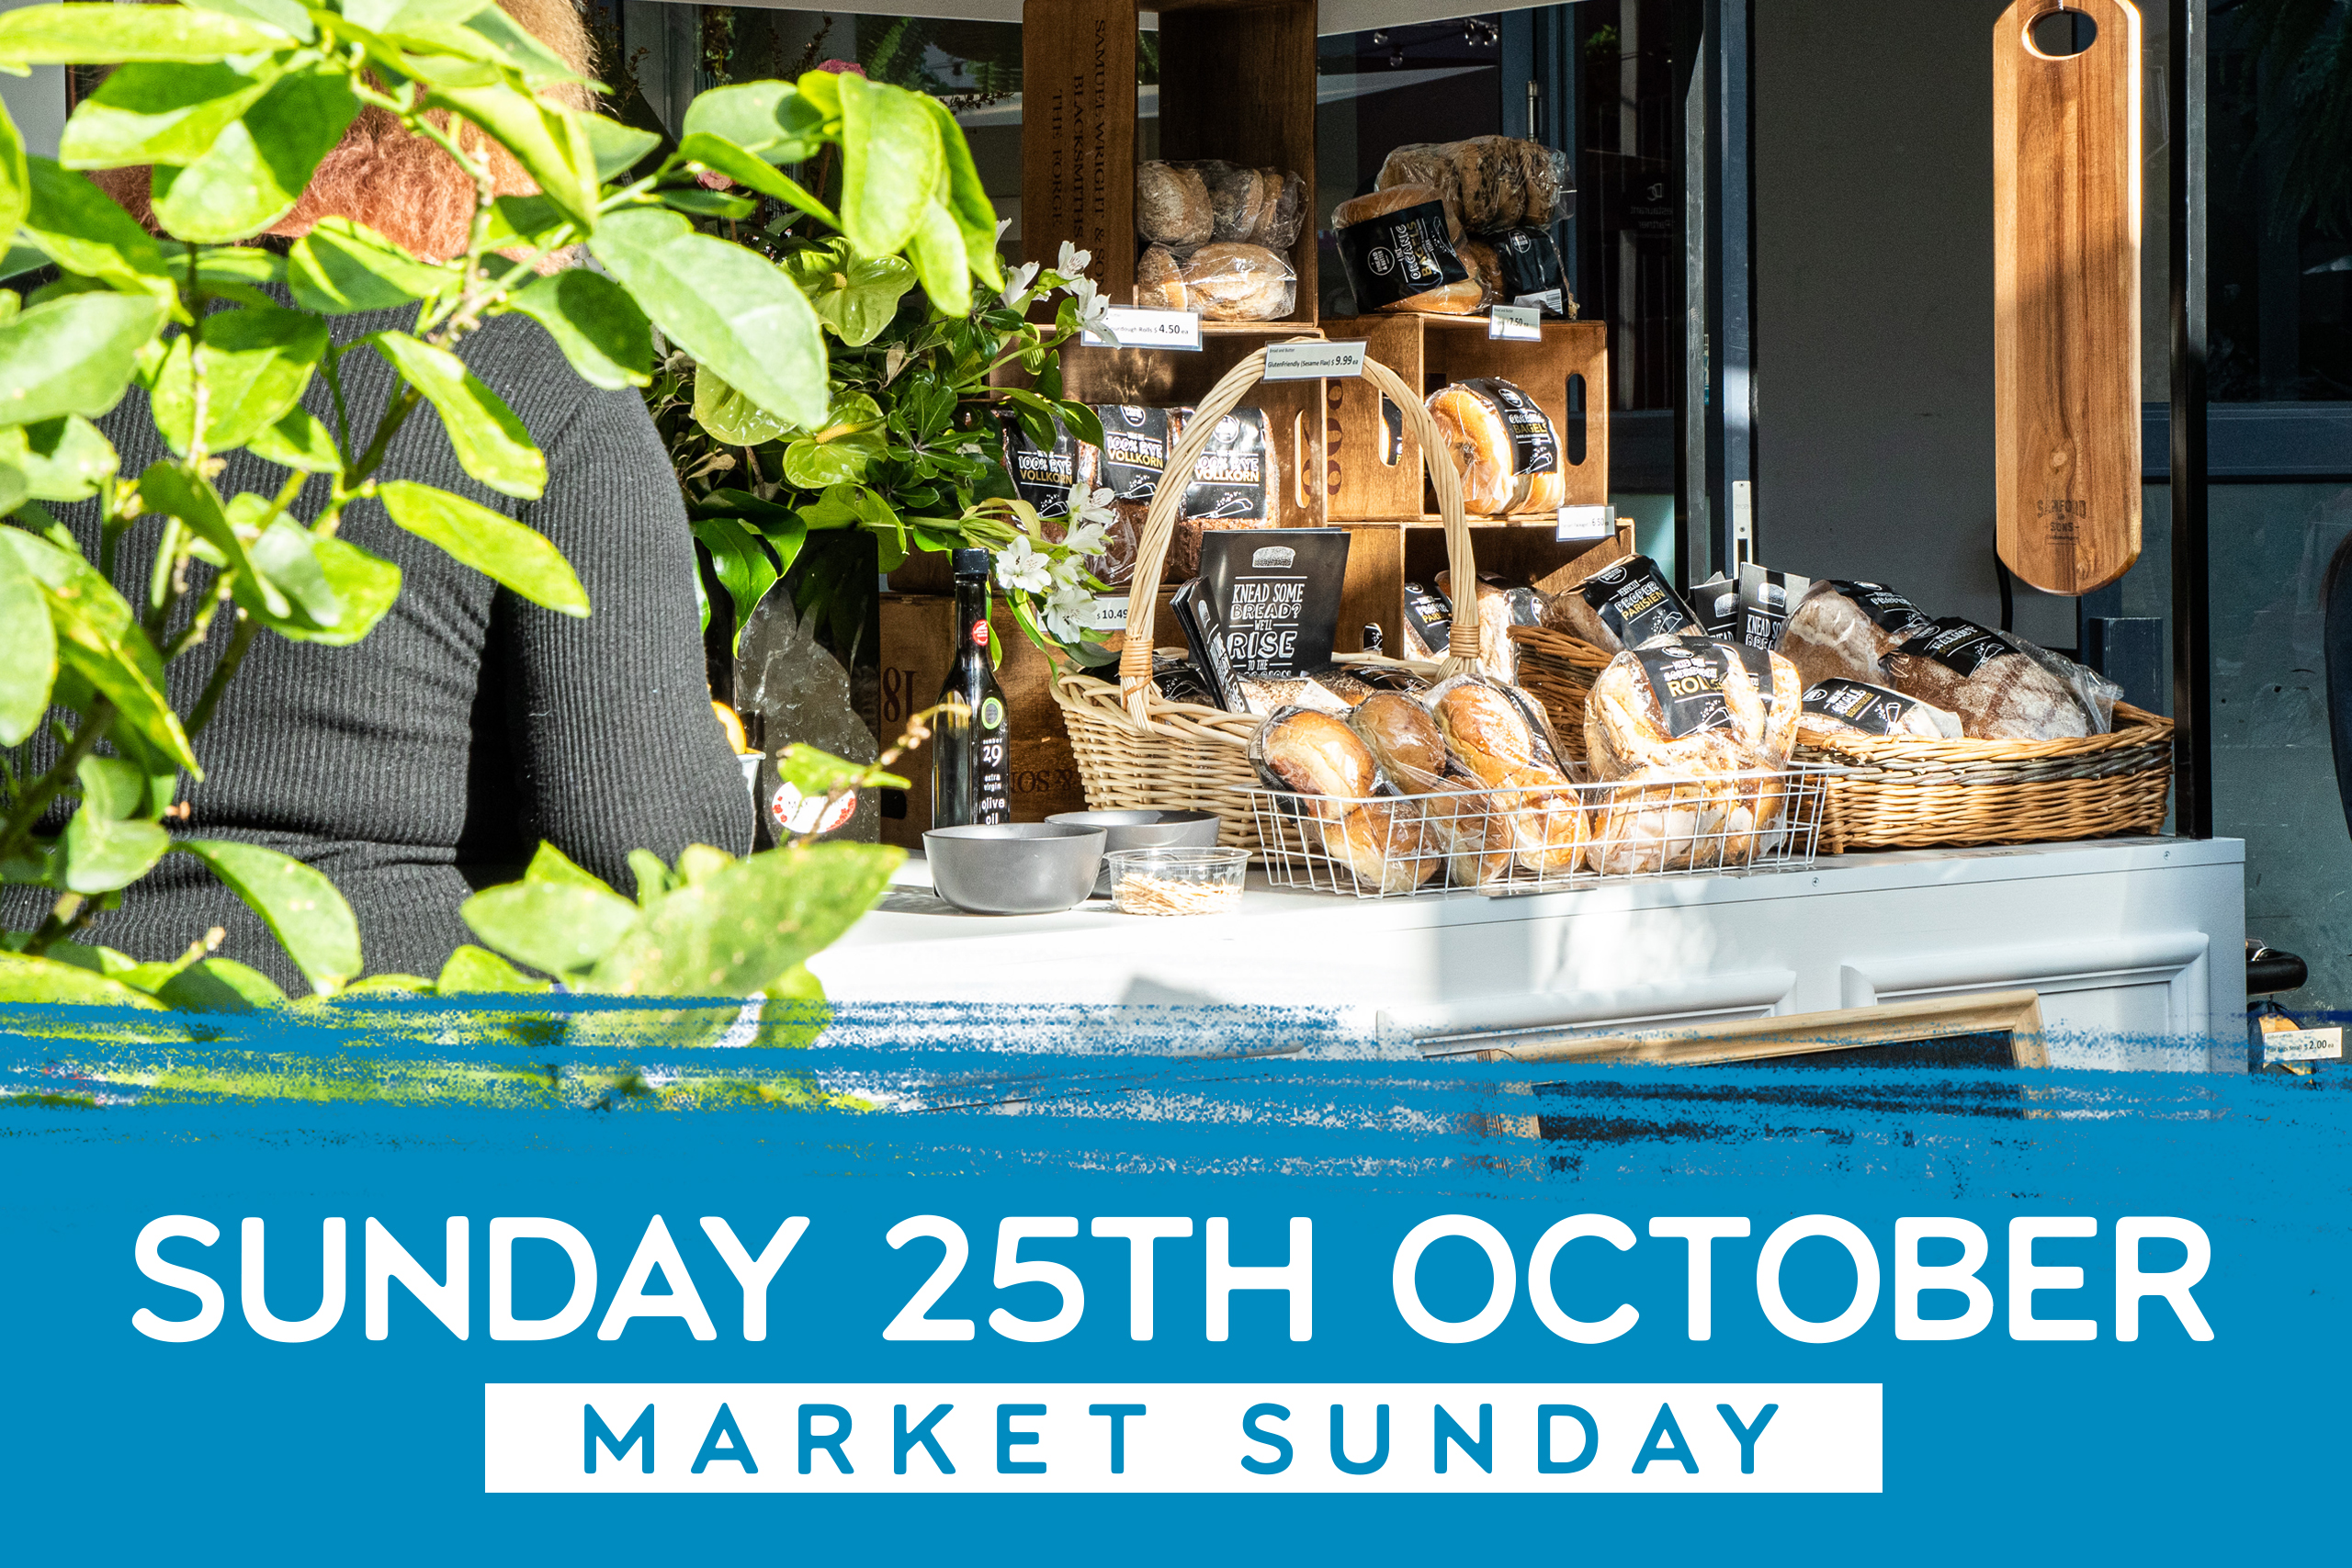 Market Sunday 25th October